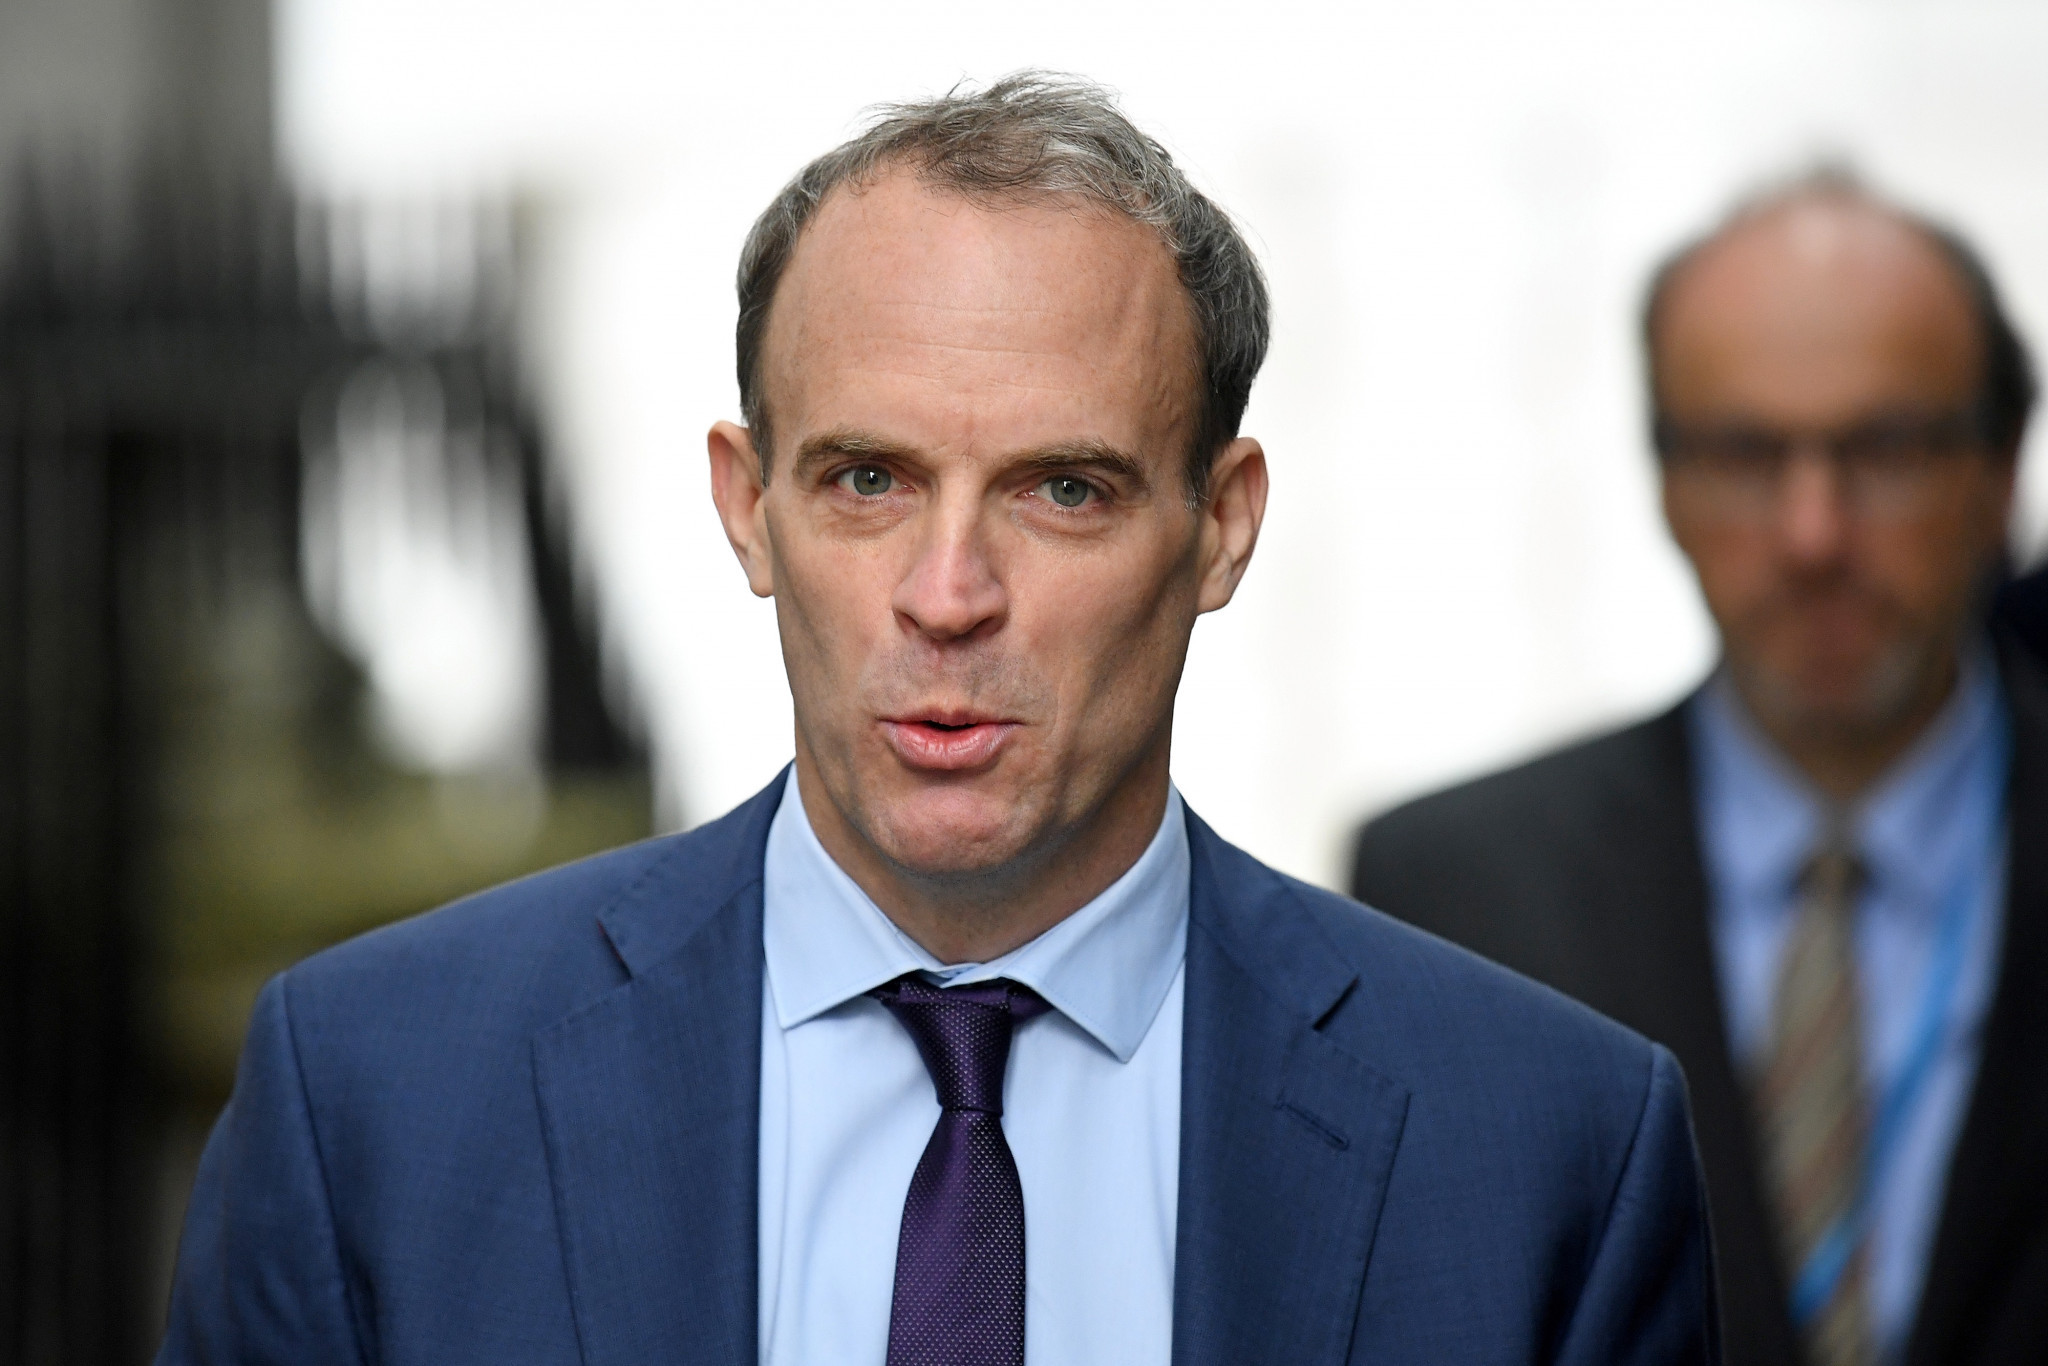 UK Foreign Secretary Dominic Raab has suggested a boycott of Beijing 2022 could be possible for politicians and dignitaries ©Getty Images